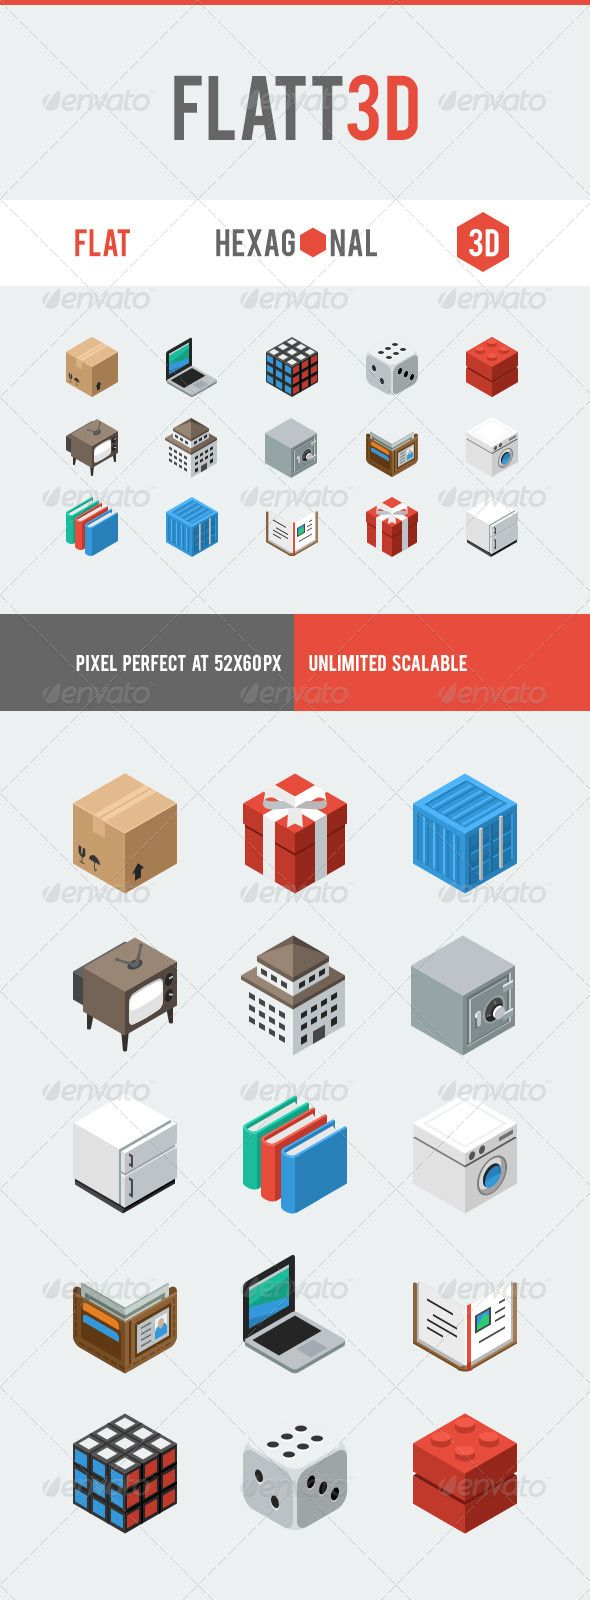 Flatt3d Icon Pack is available on GraphicRiver now!